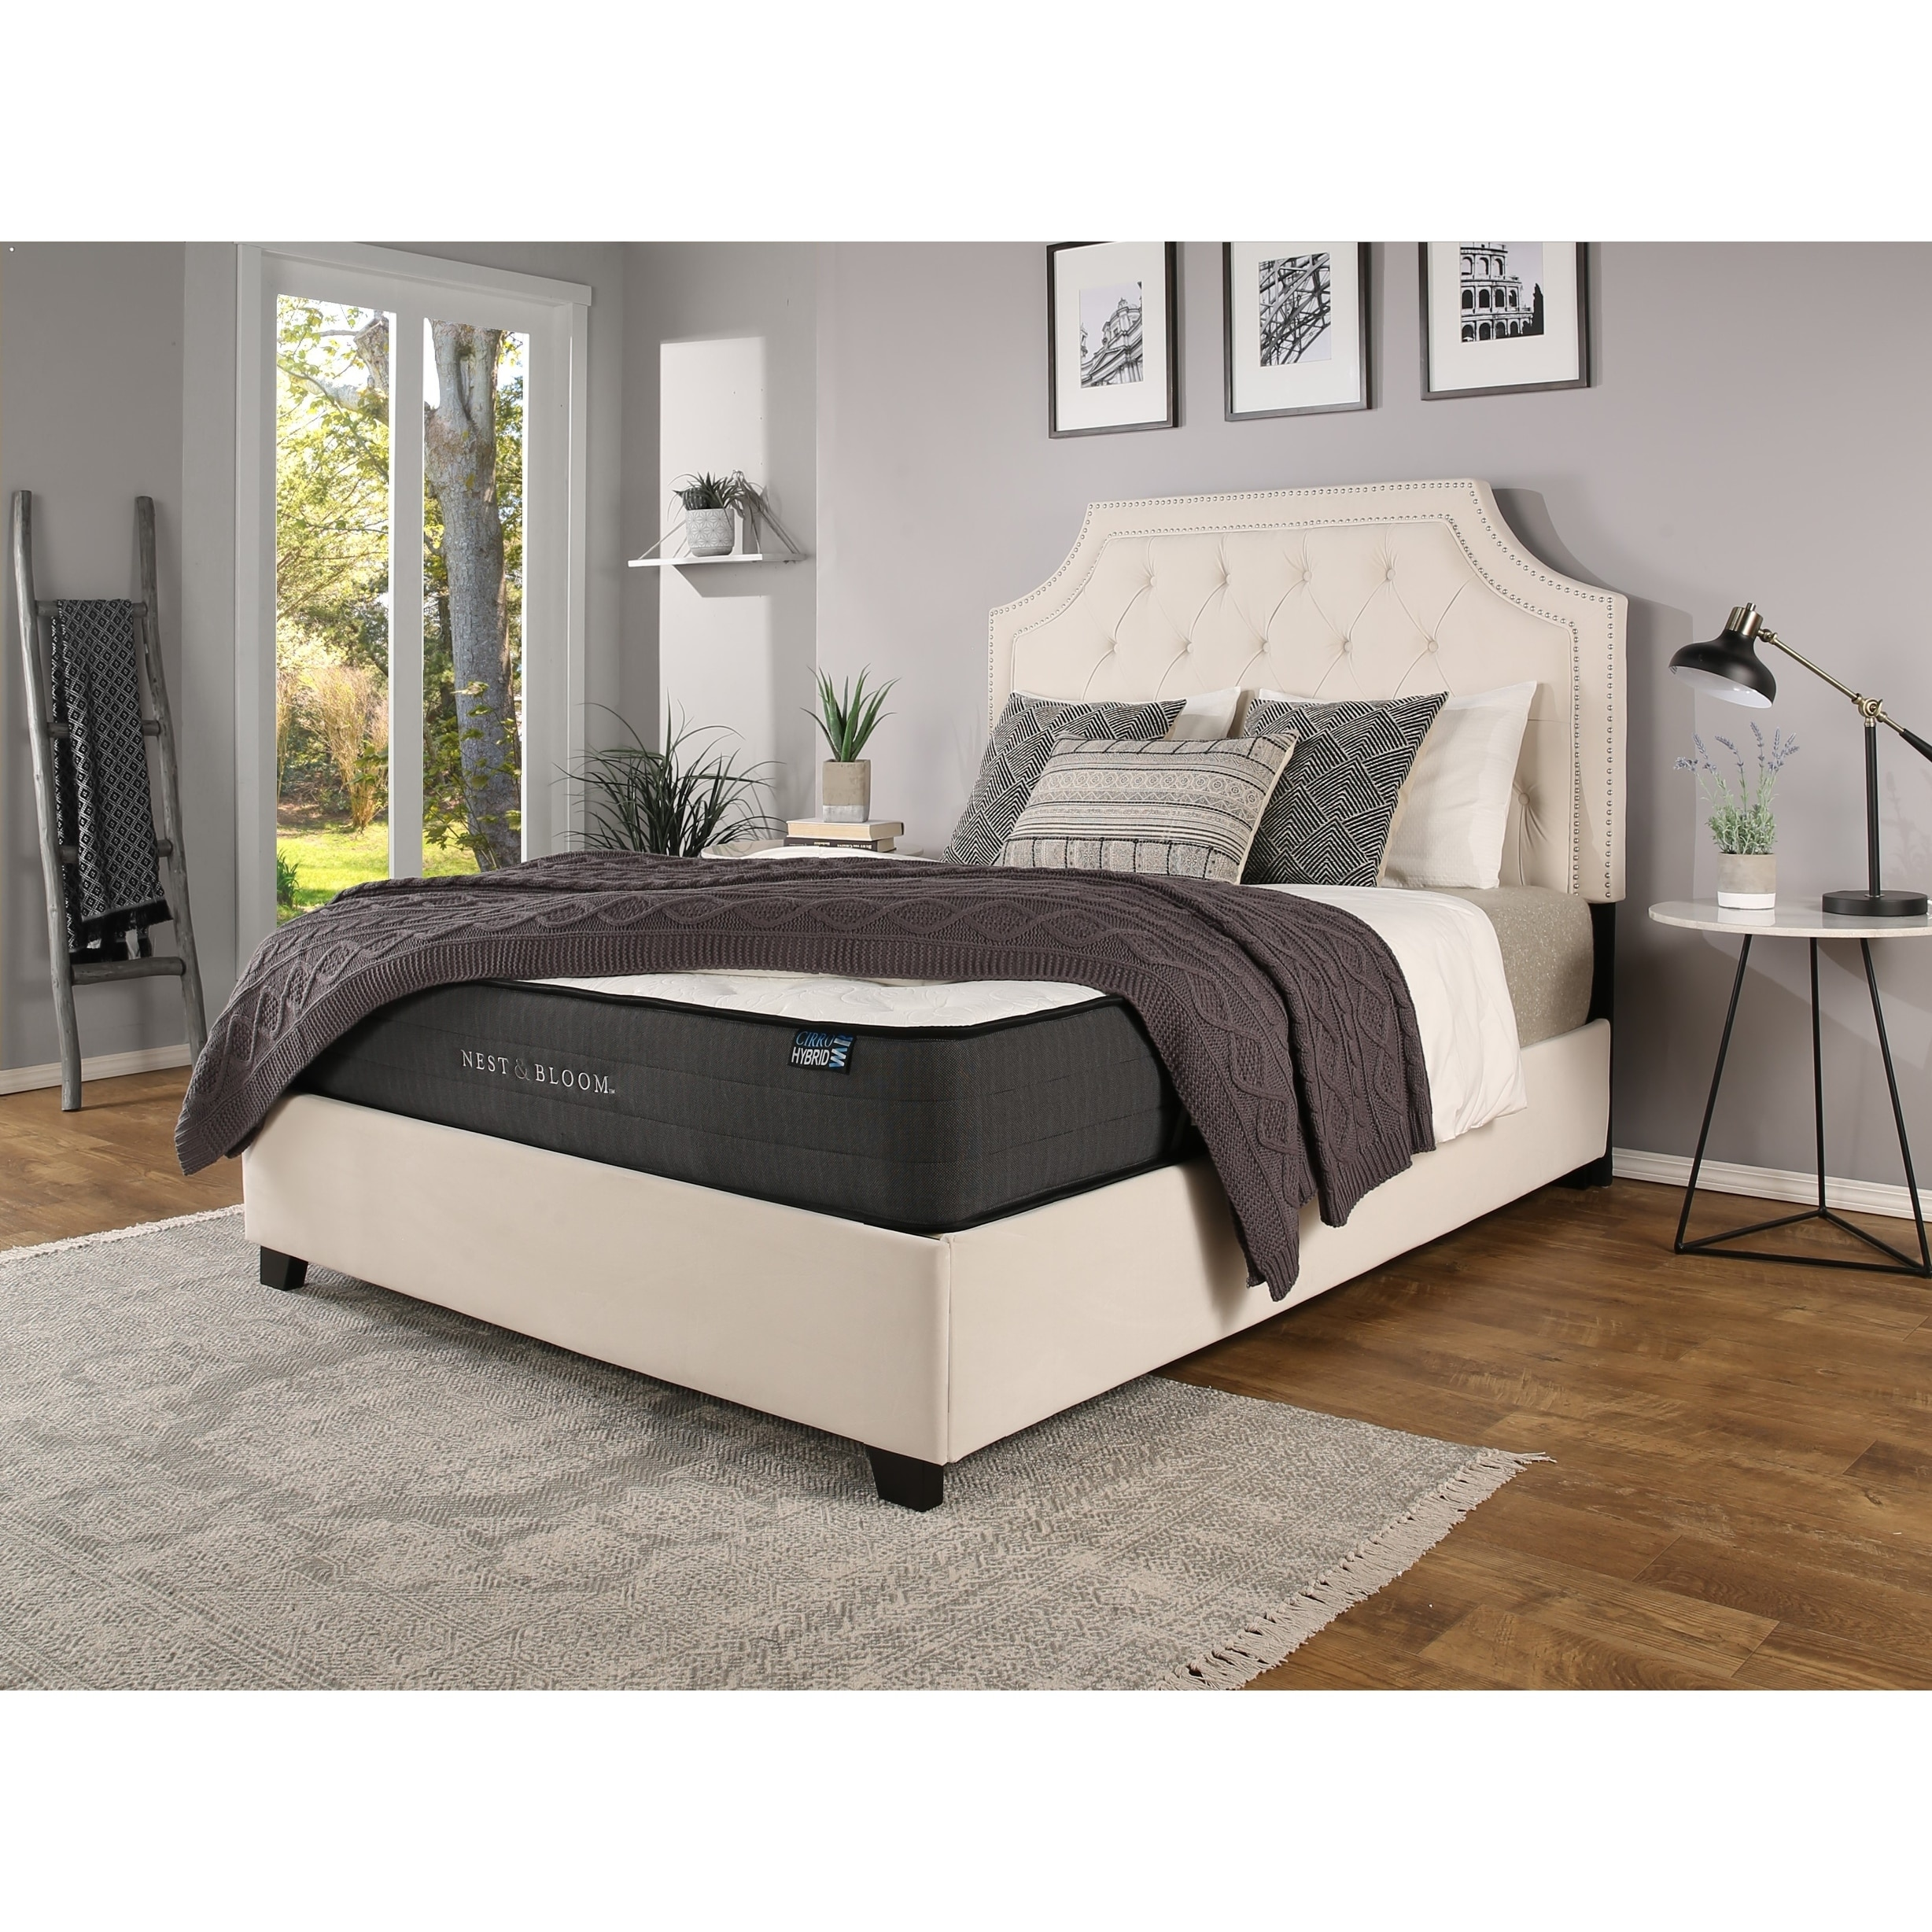 ryan design john product by mattress hybrid bed specialists